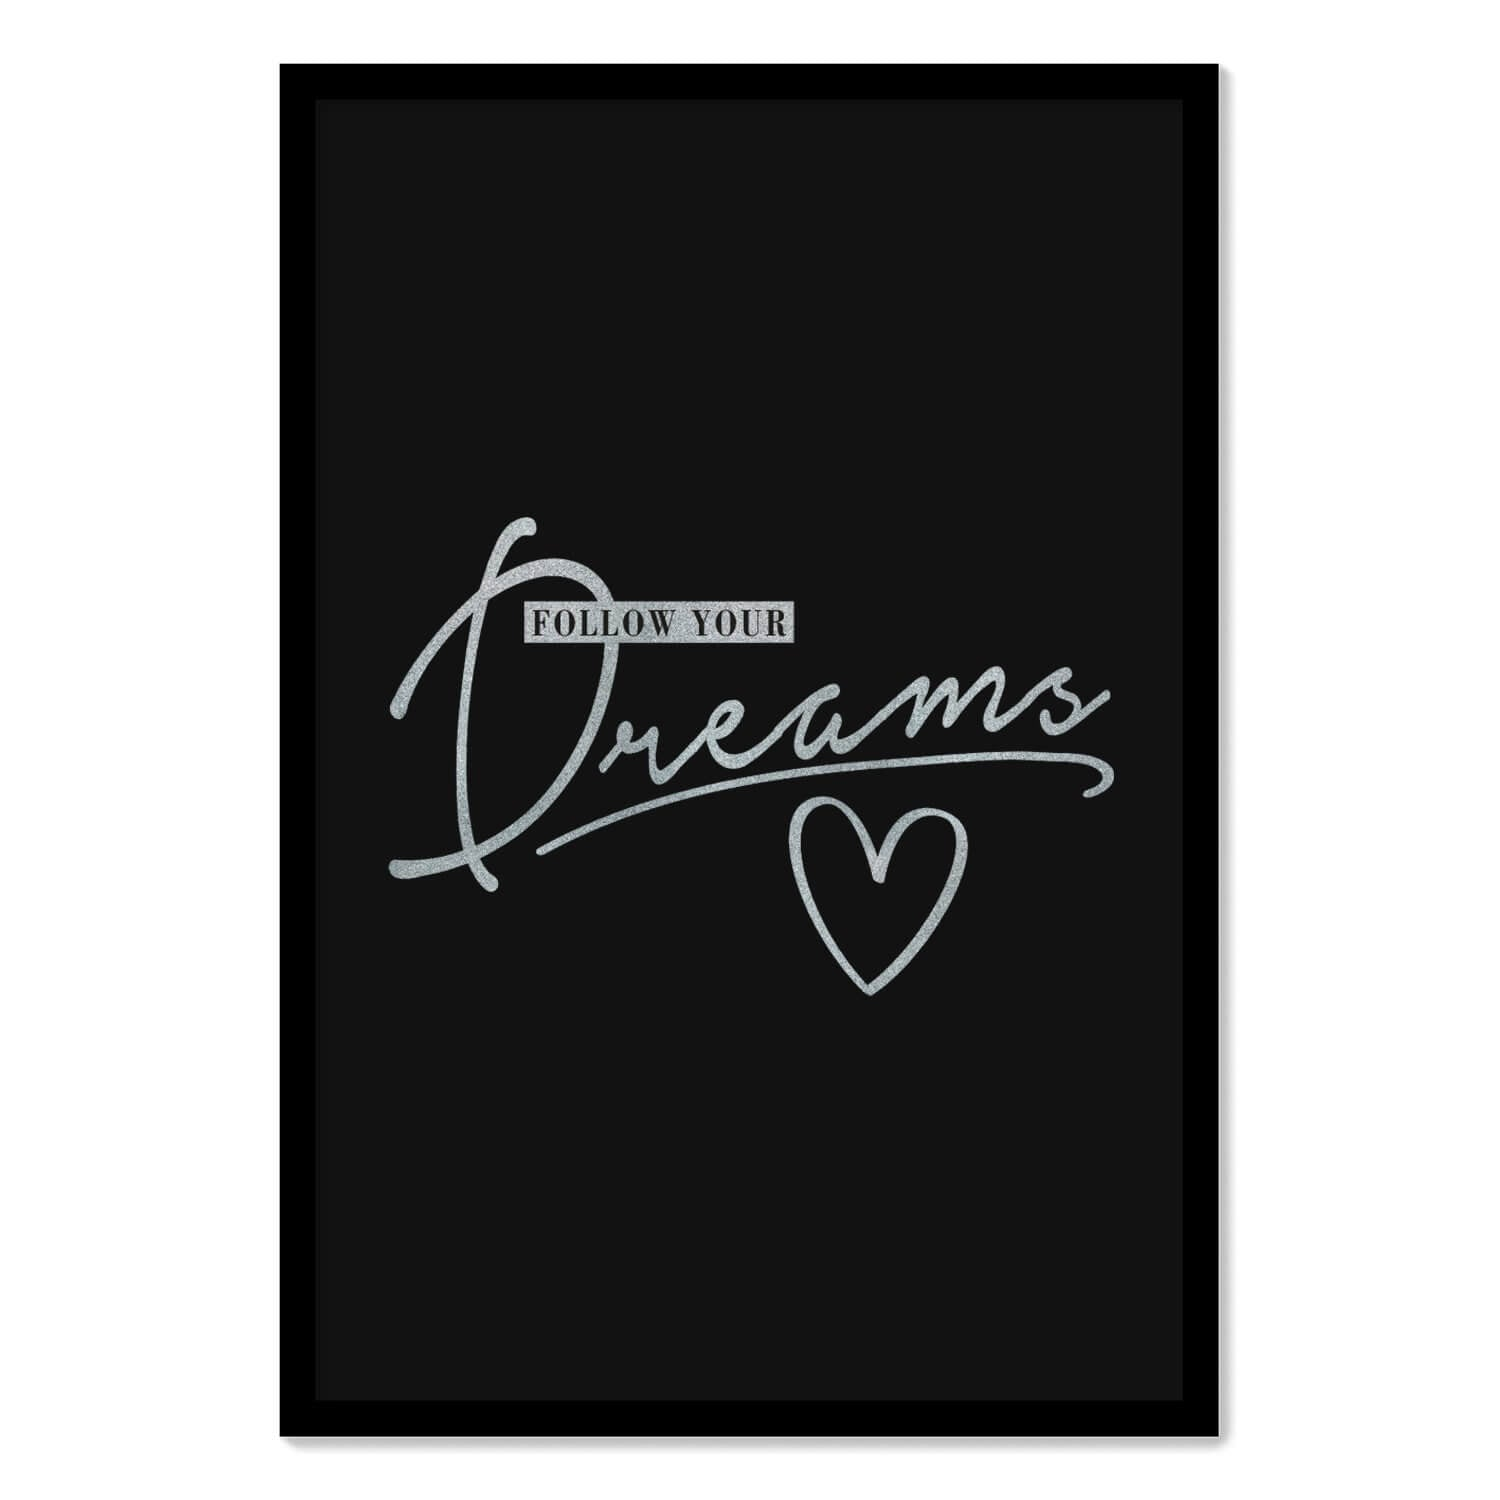 Follow Your Dreams Framed Poster